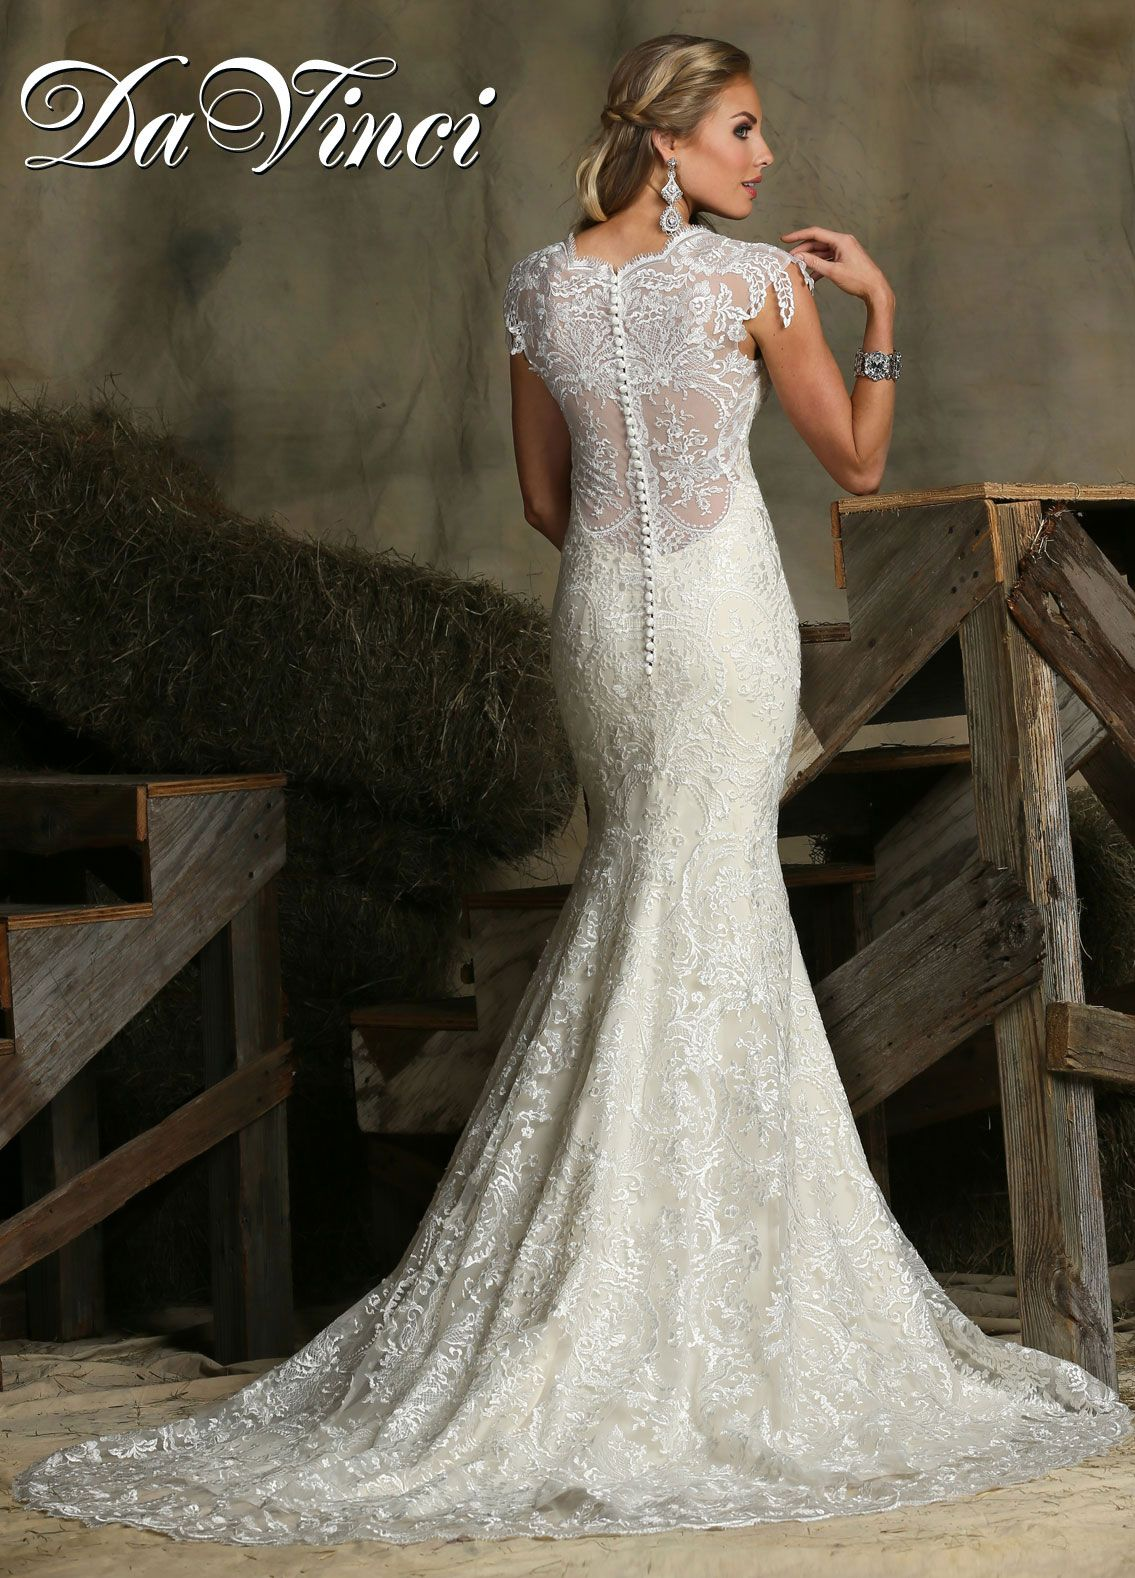 Davinci bridal style is a vneck lace wedding dress with an